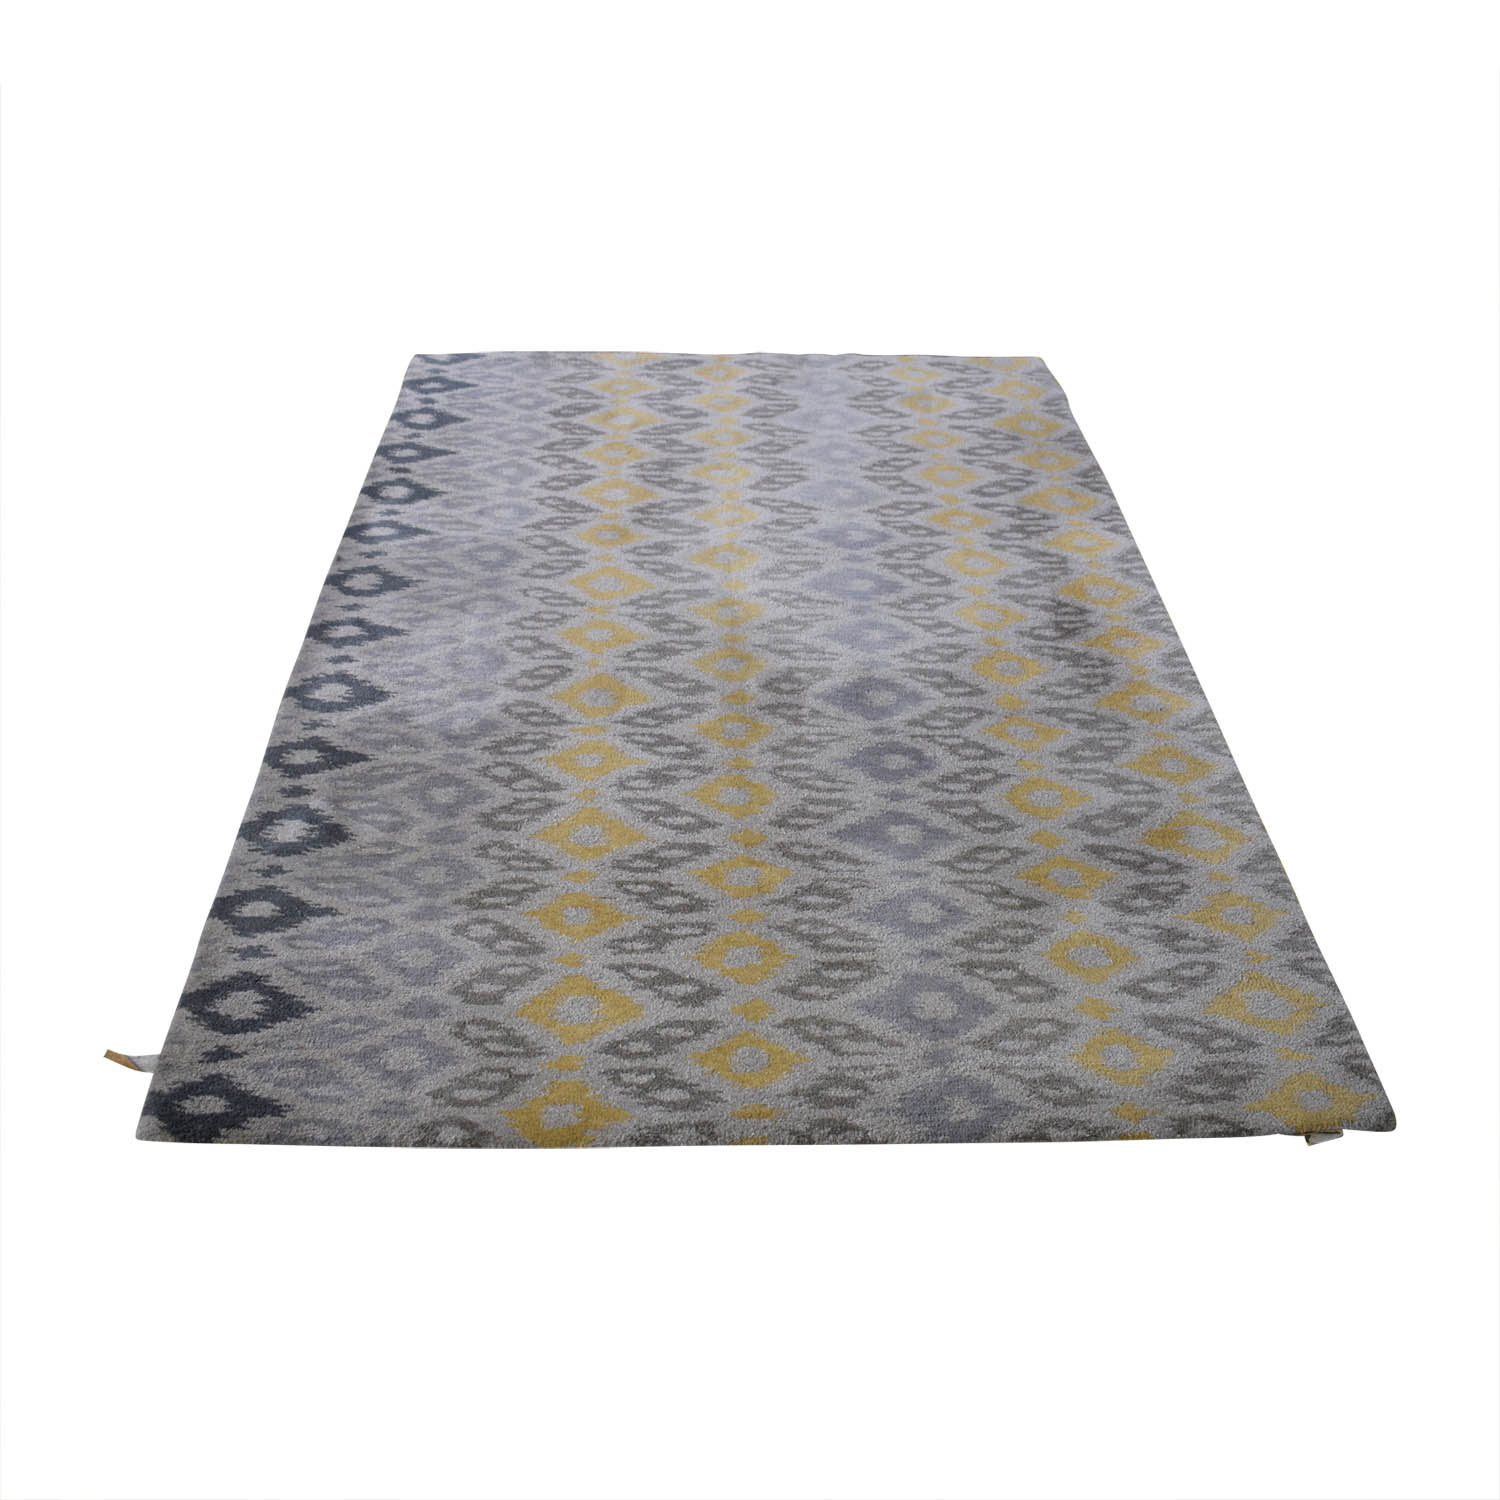 Crate & Barrel Crate & Barrel Phila Ikat Wool Rug nyc